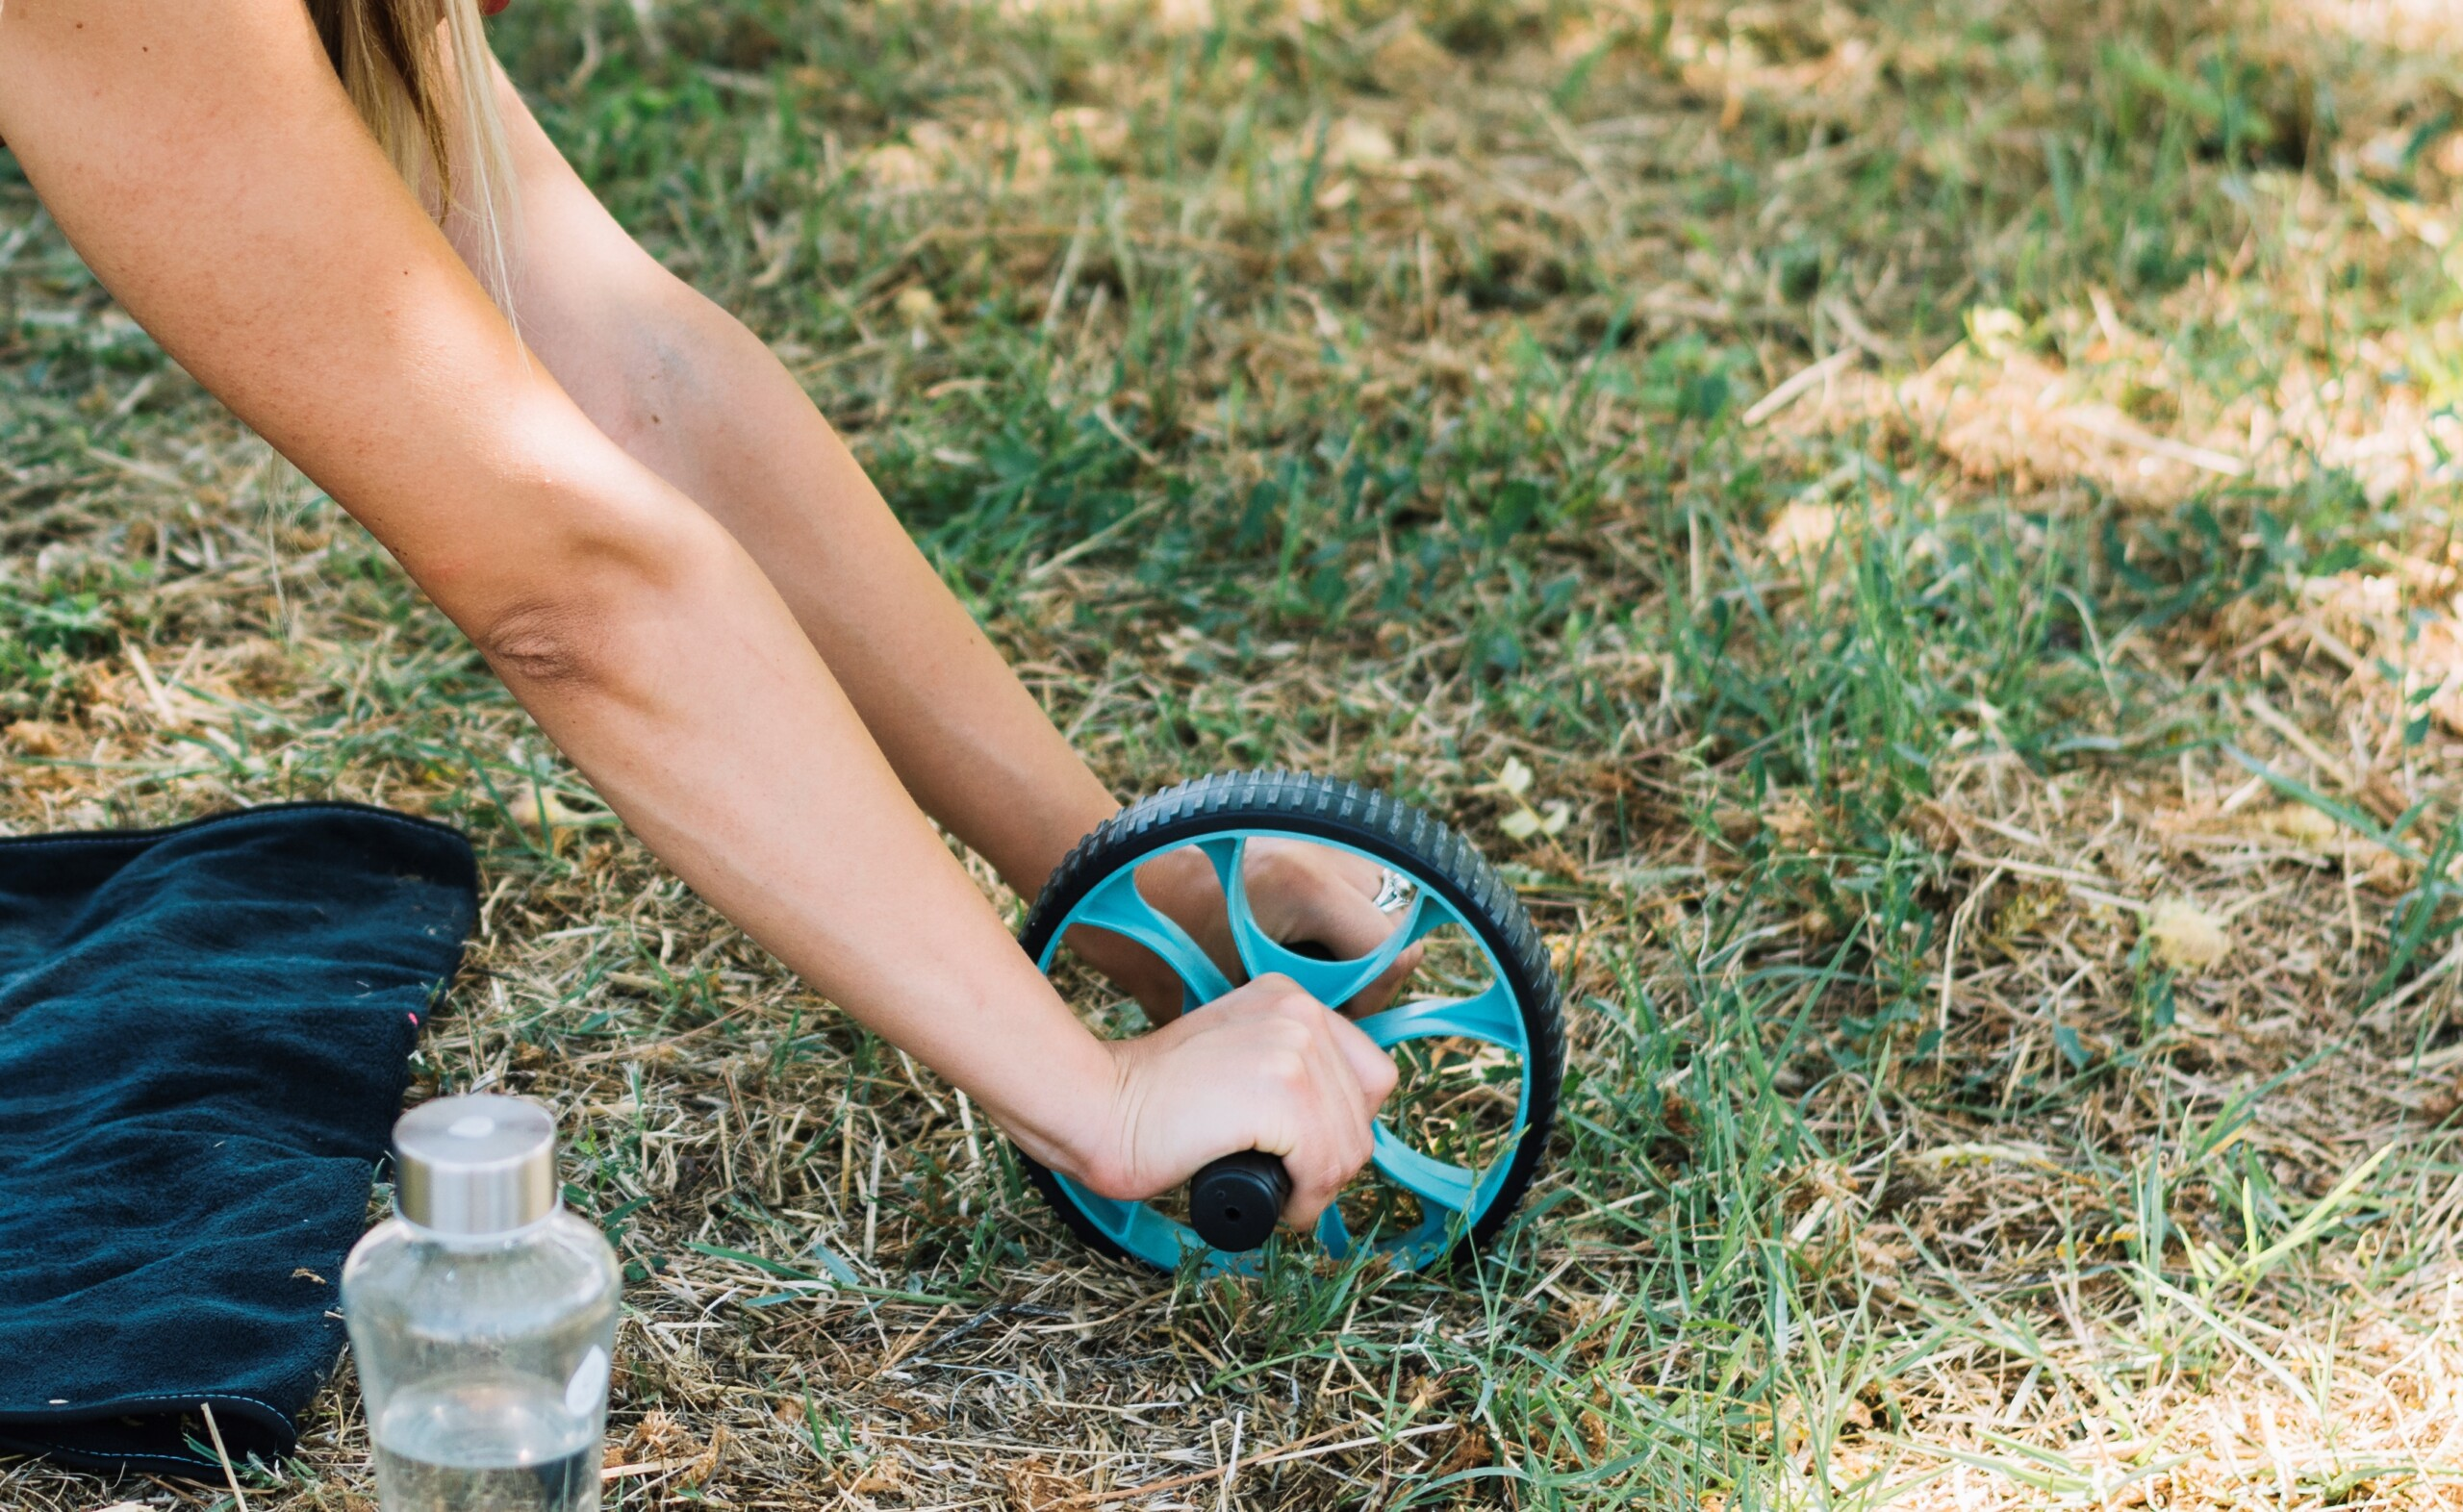 Ab Wheel Exercise After Double Mastectomy: What to Expect